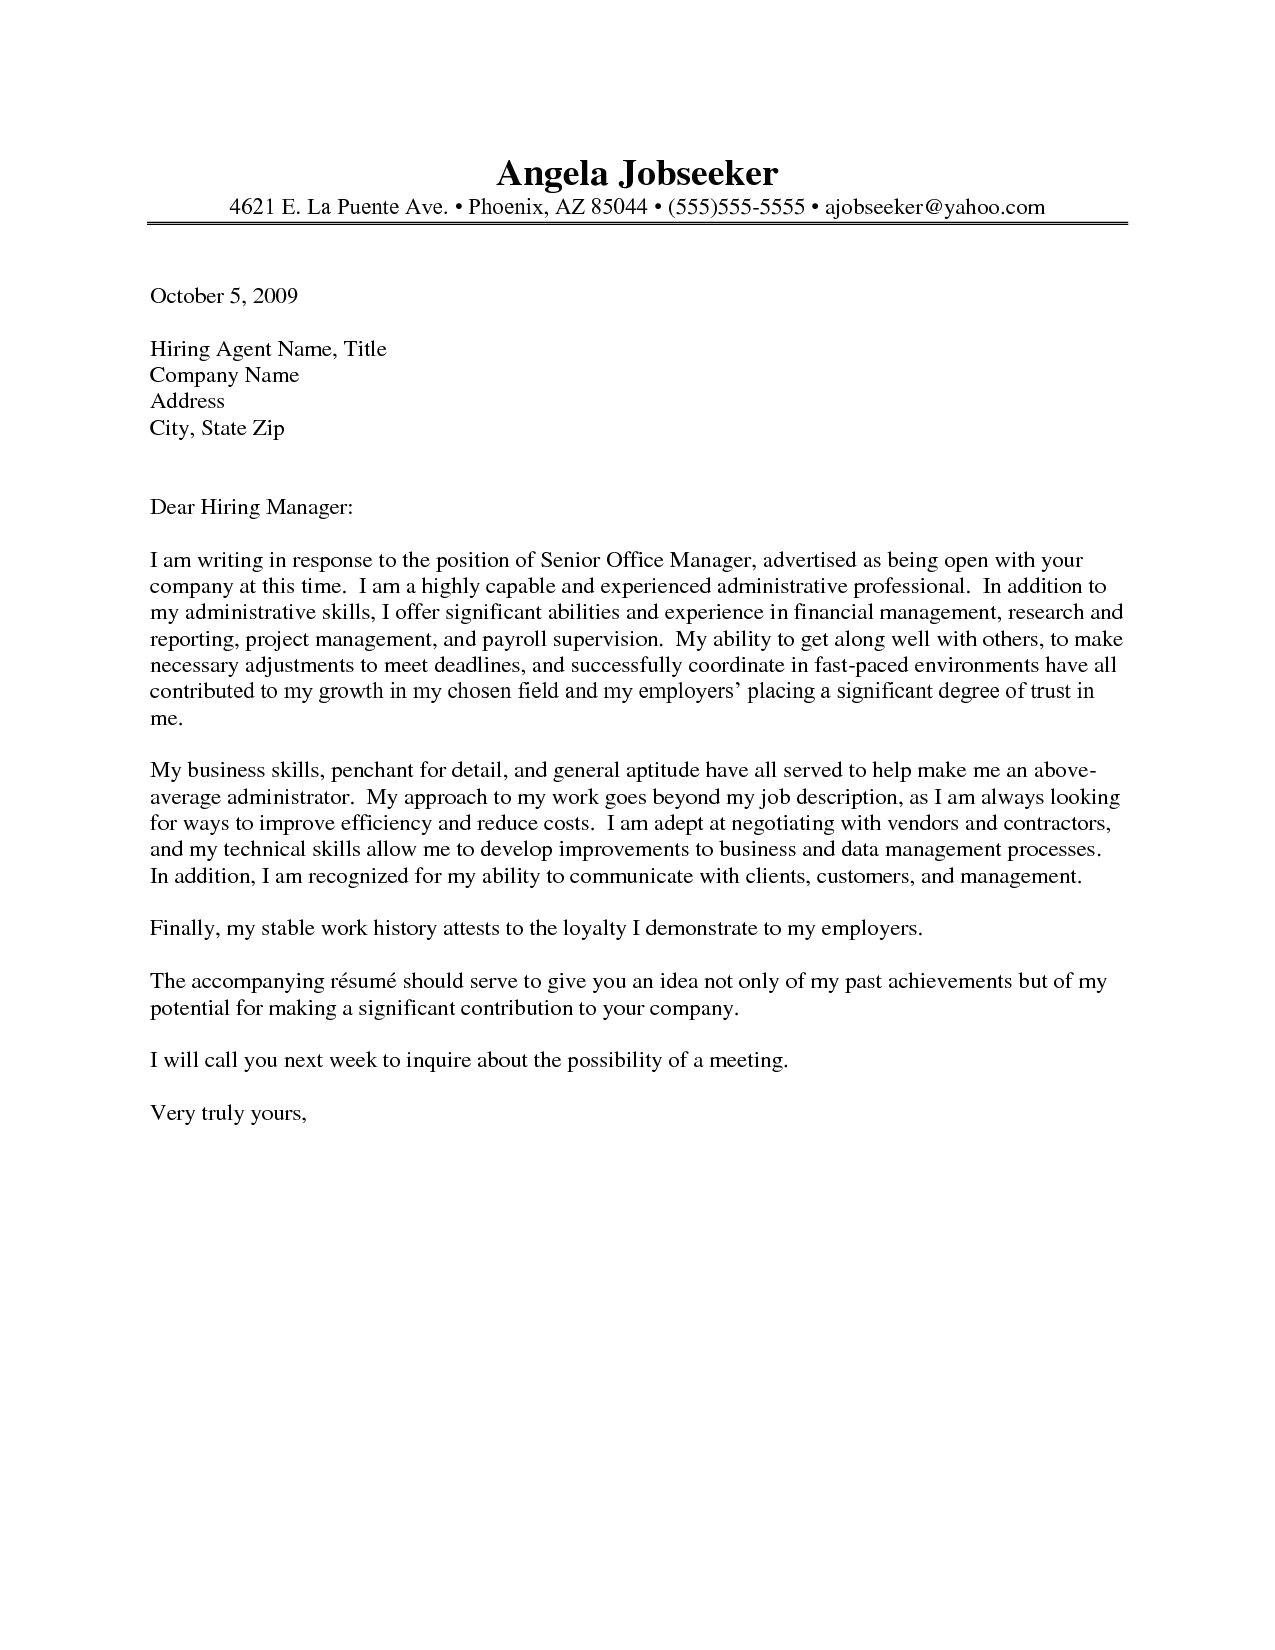 Samples Of Cover Letters for Administrative Positions Administrative assistant Resume Cover Letter Http